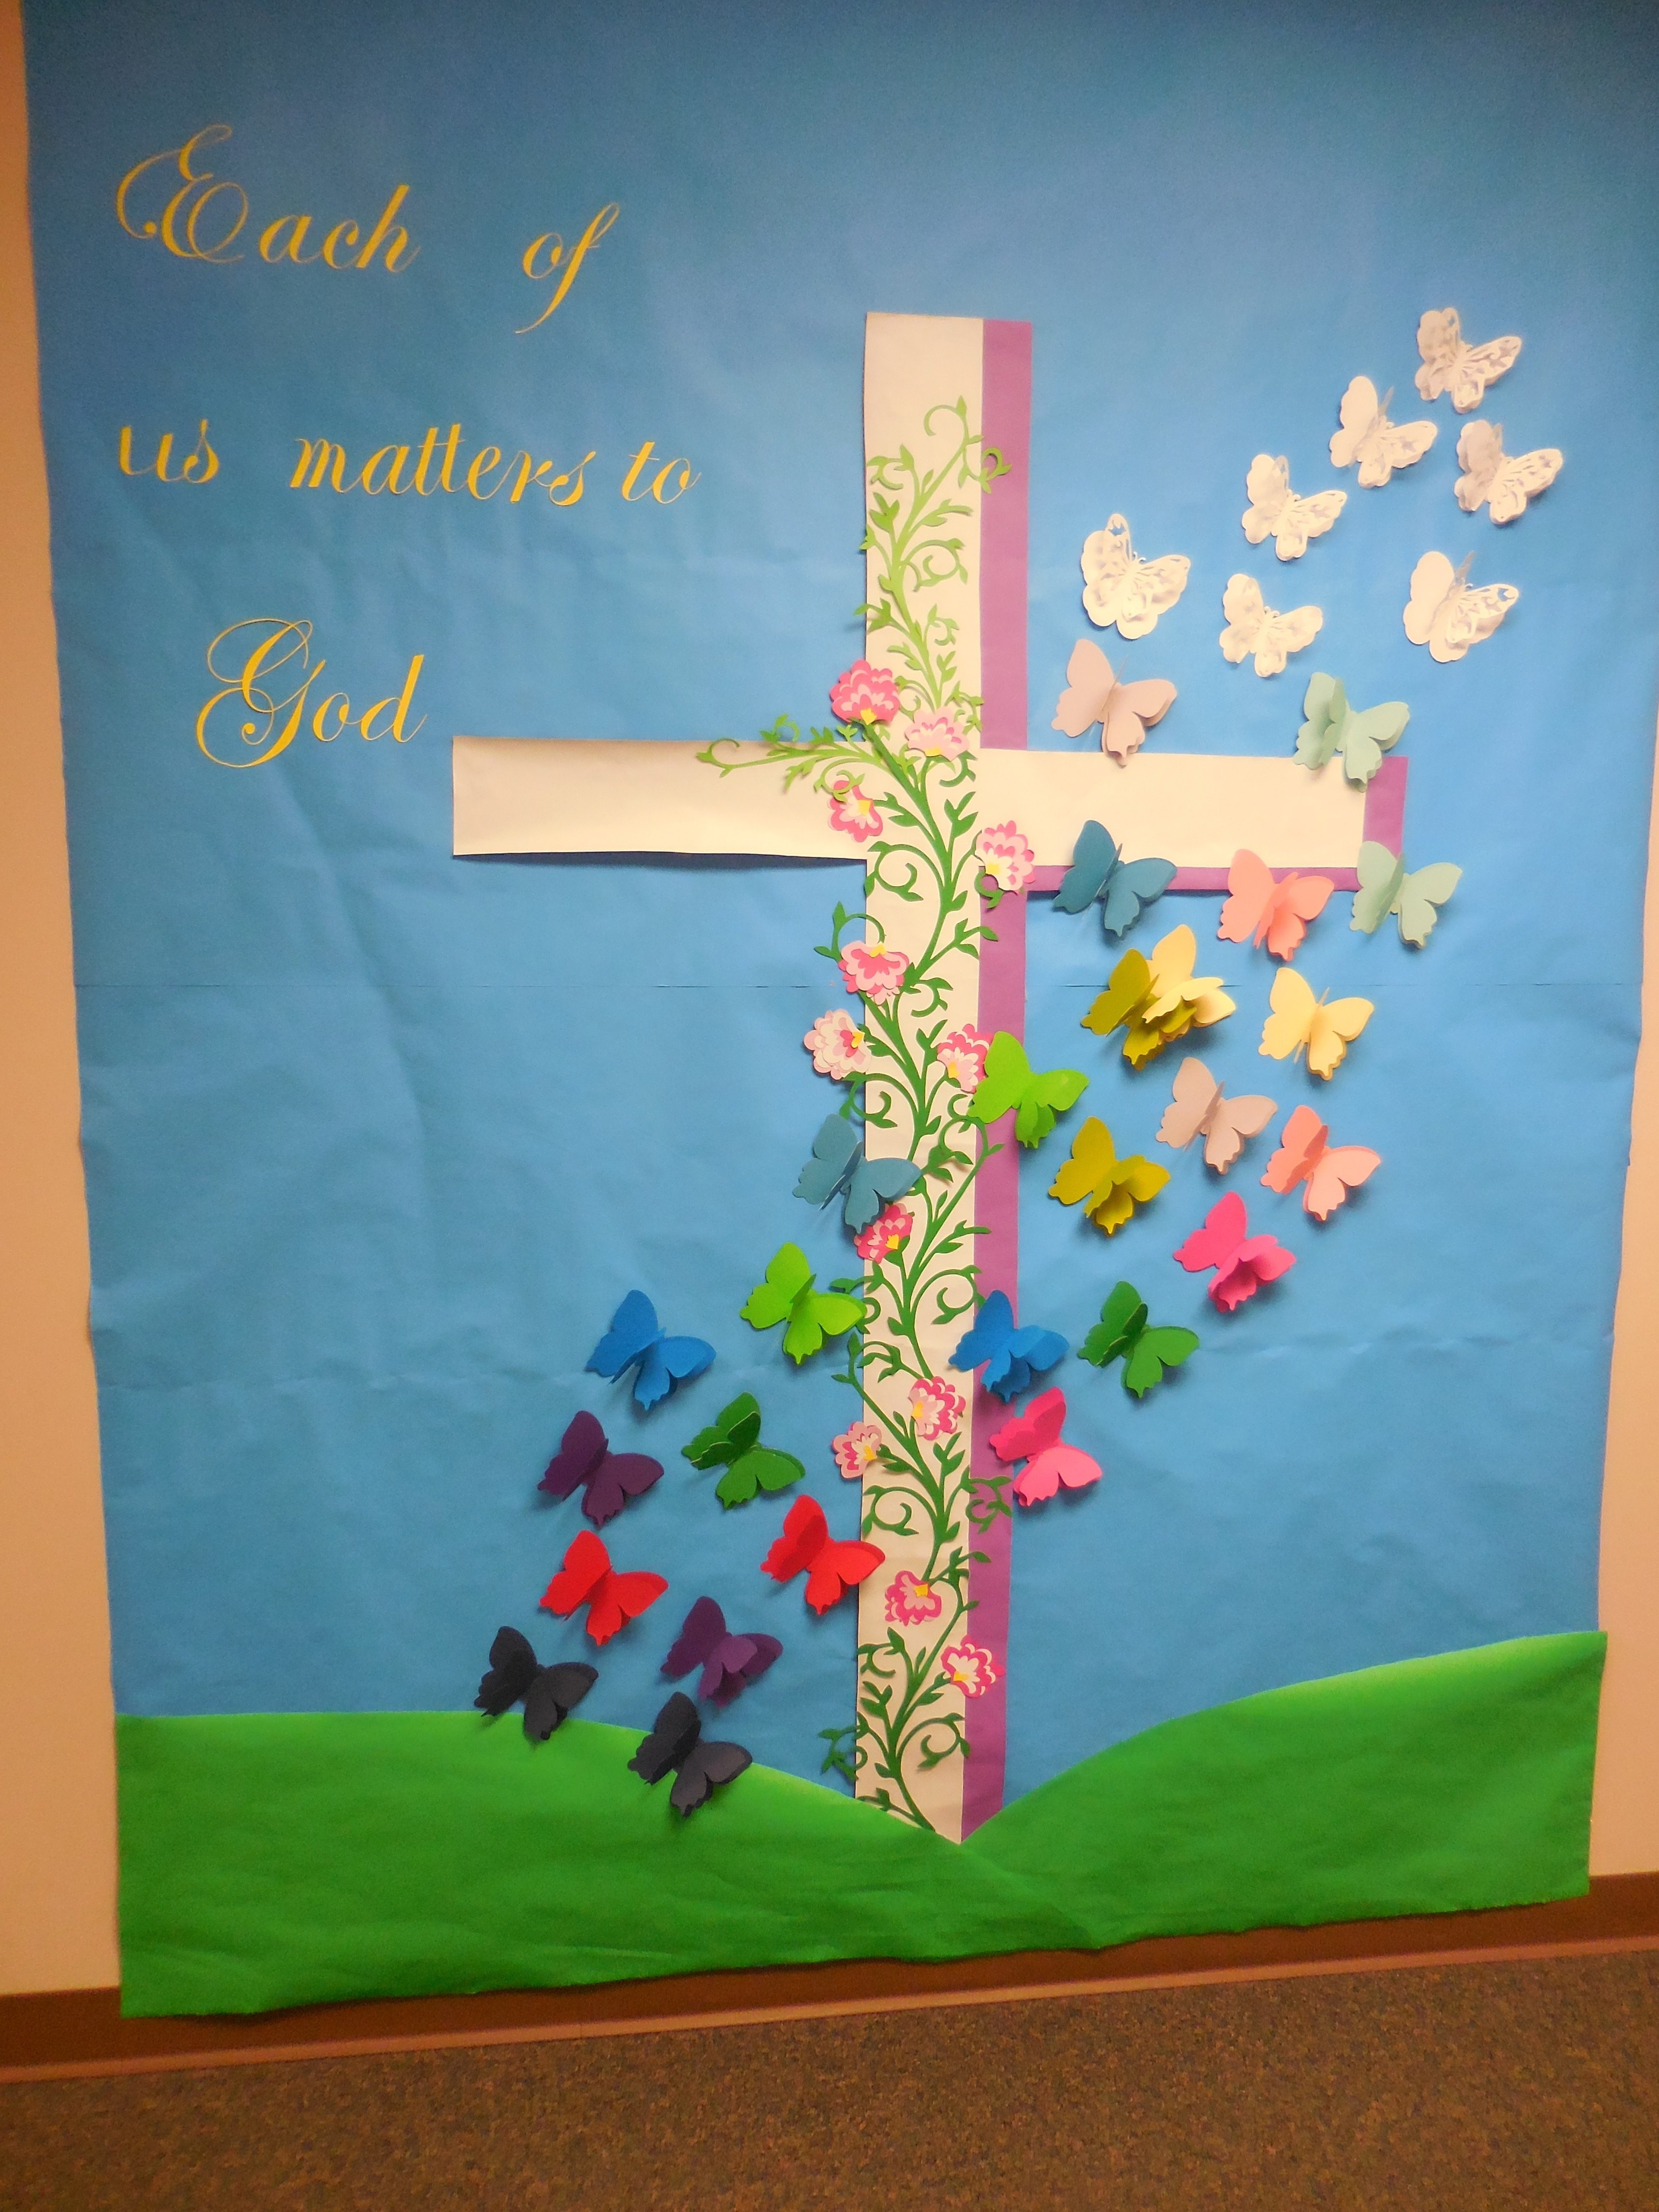 10 Most Recommended Easter Bulletin Board Ideas For Church each of us matters to god april easter resurrection cross 2020